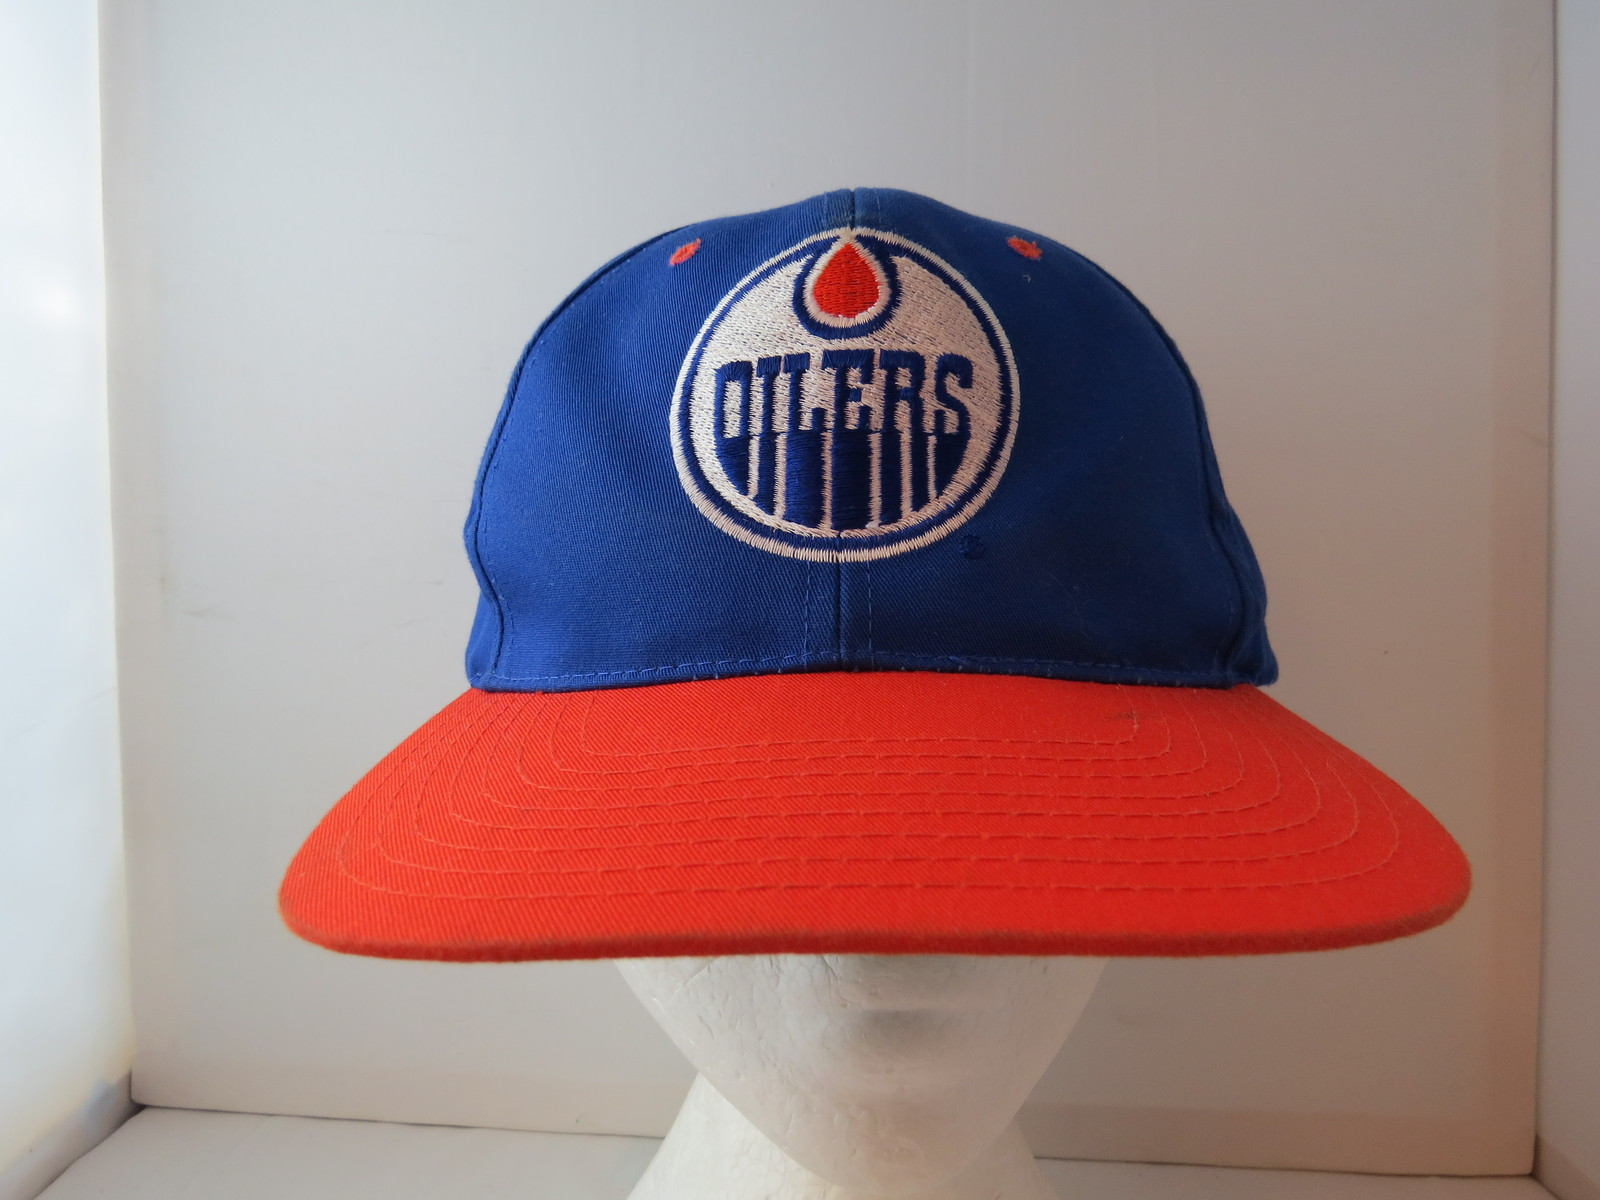 separation shoes f0a5e 531e5 Edmonton Oilers Hat - Team Logo Front   and 50 similar items. Img 9664